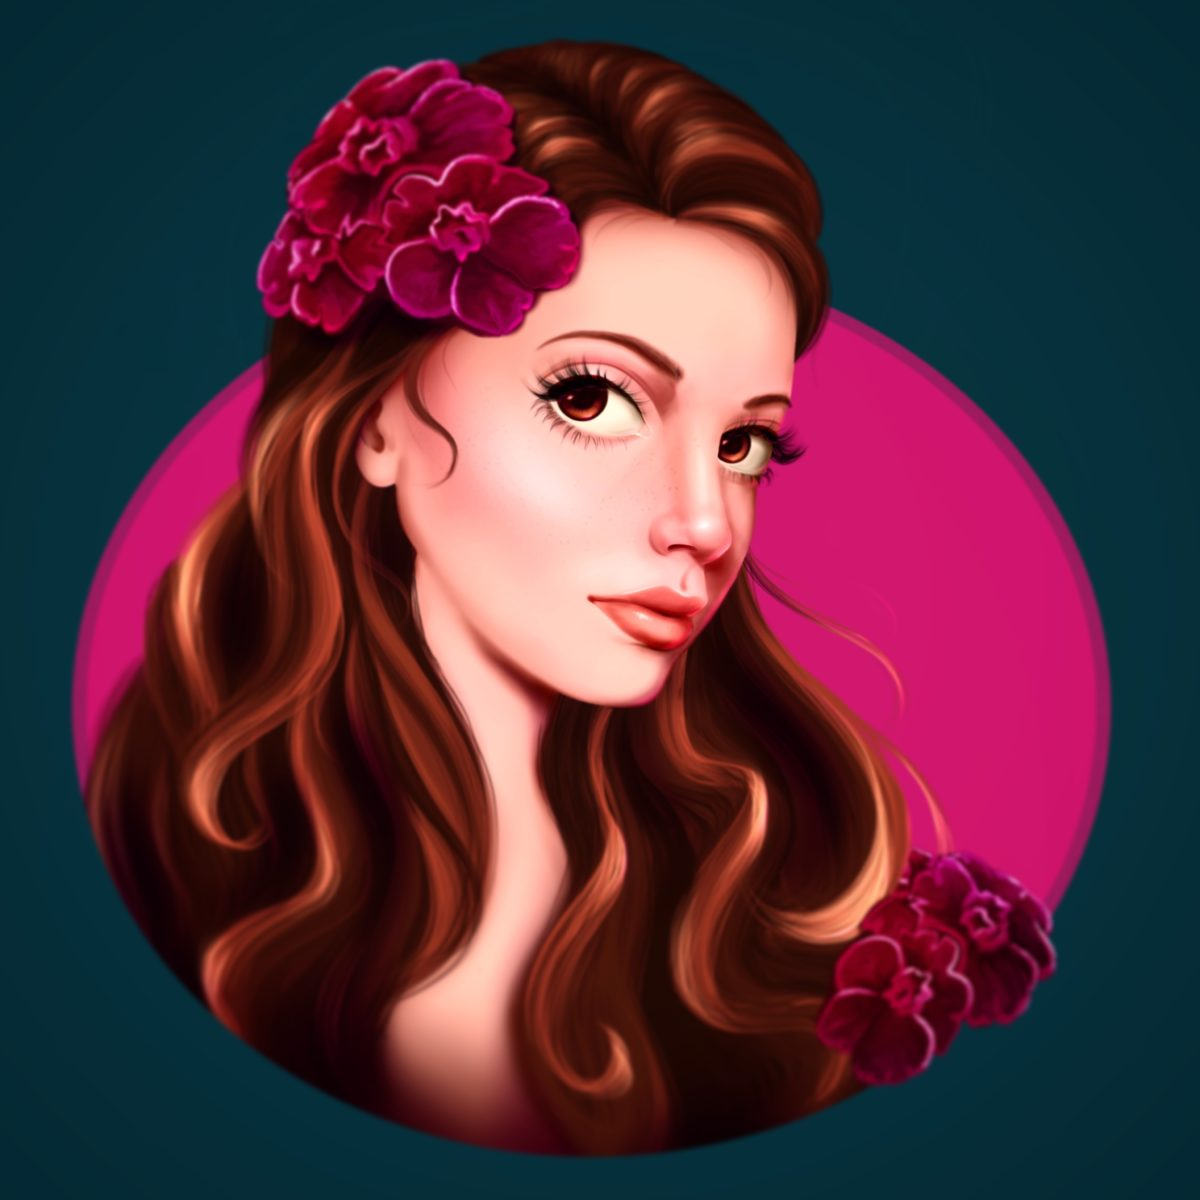 Female character design - semi-realistic portrait of a beautiful woman with flowers